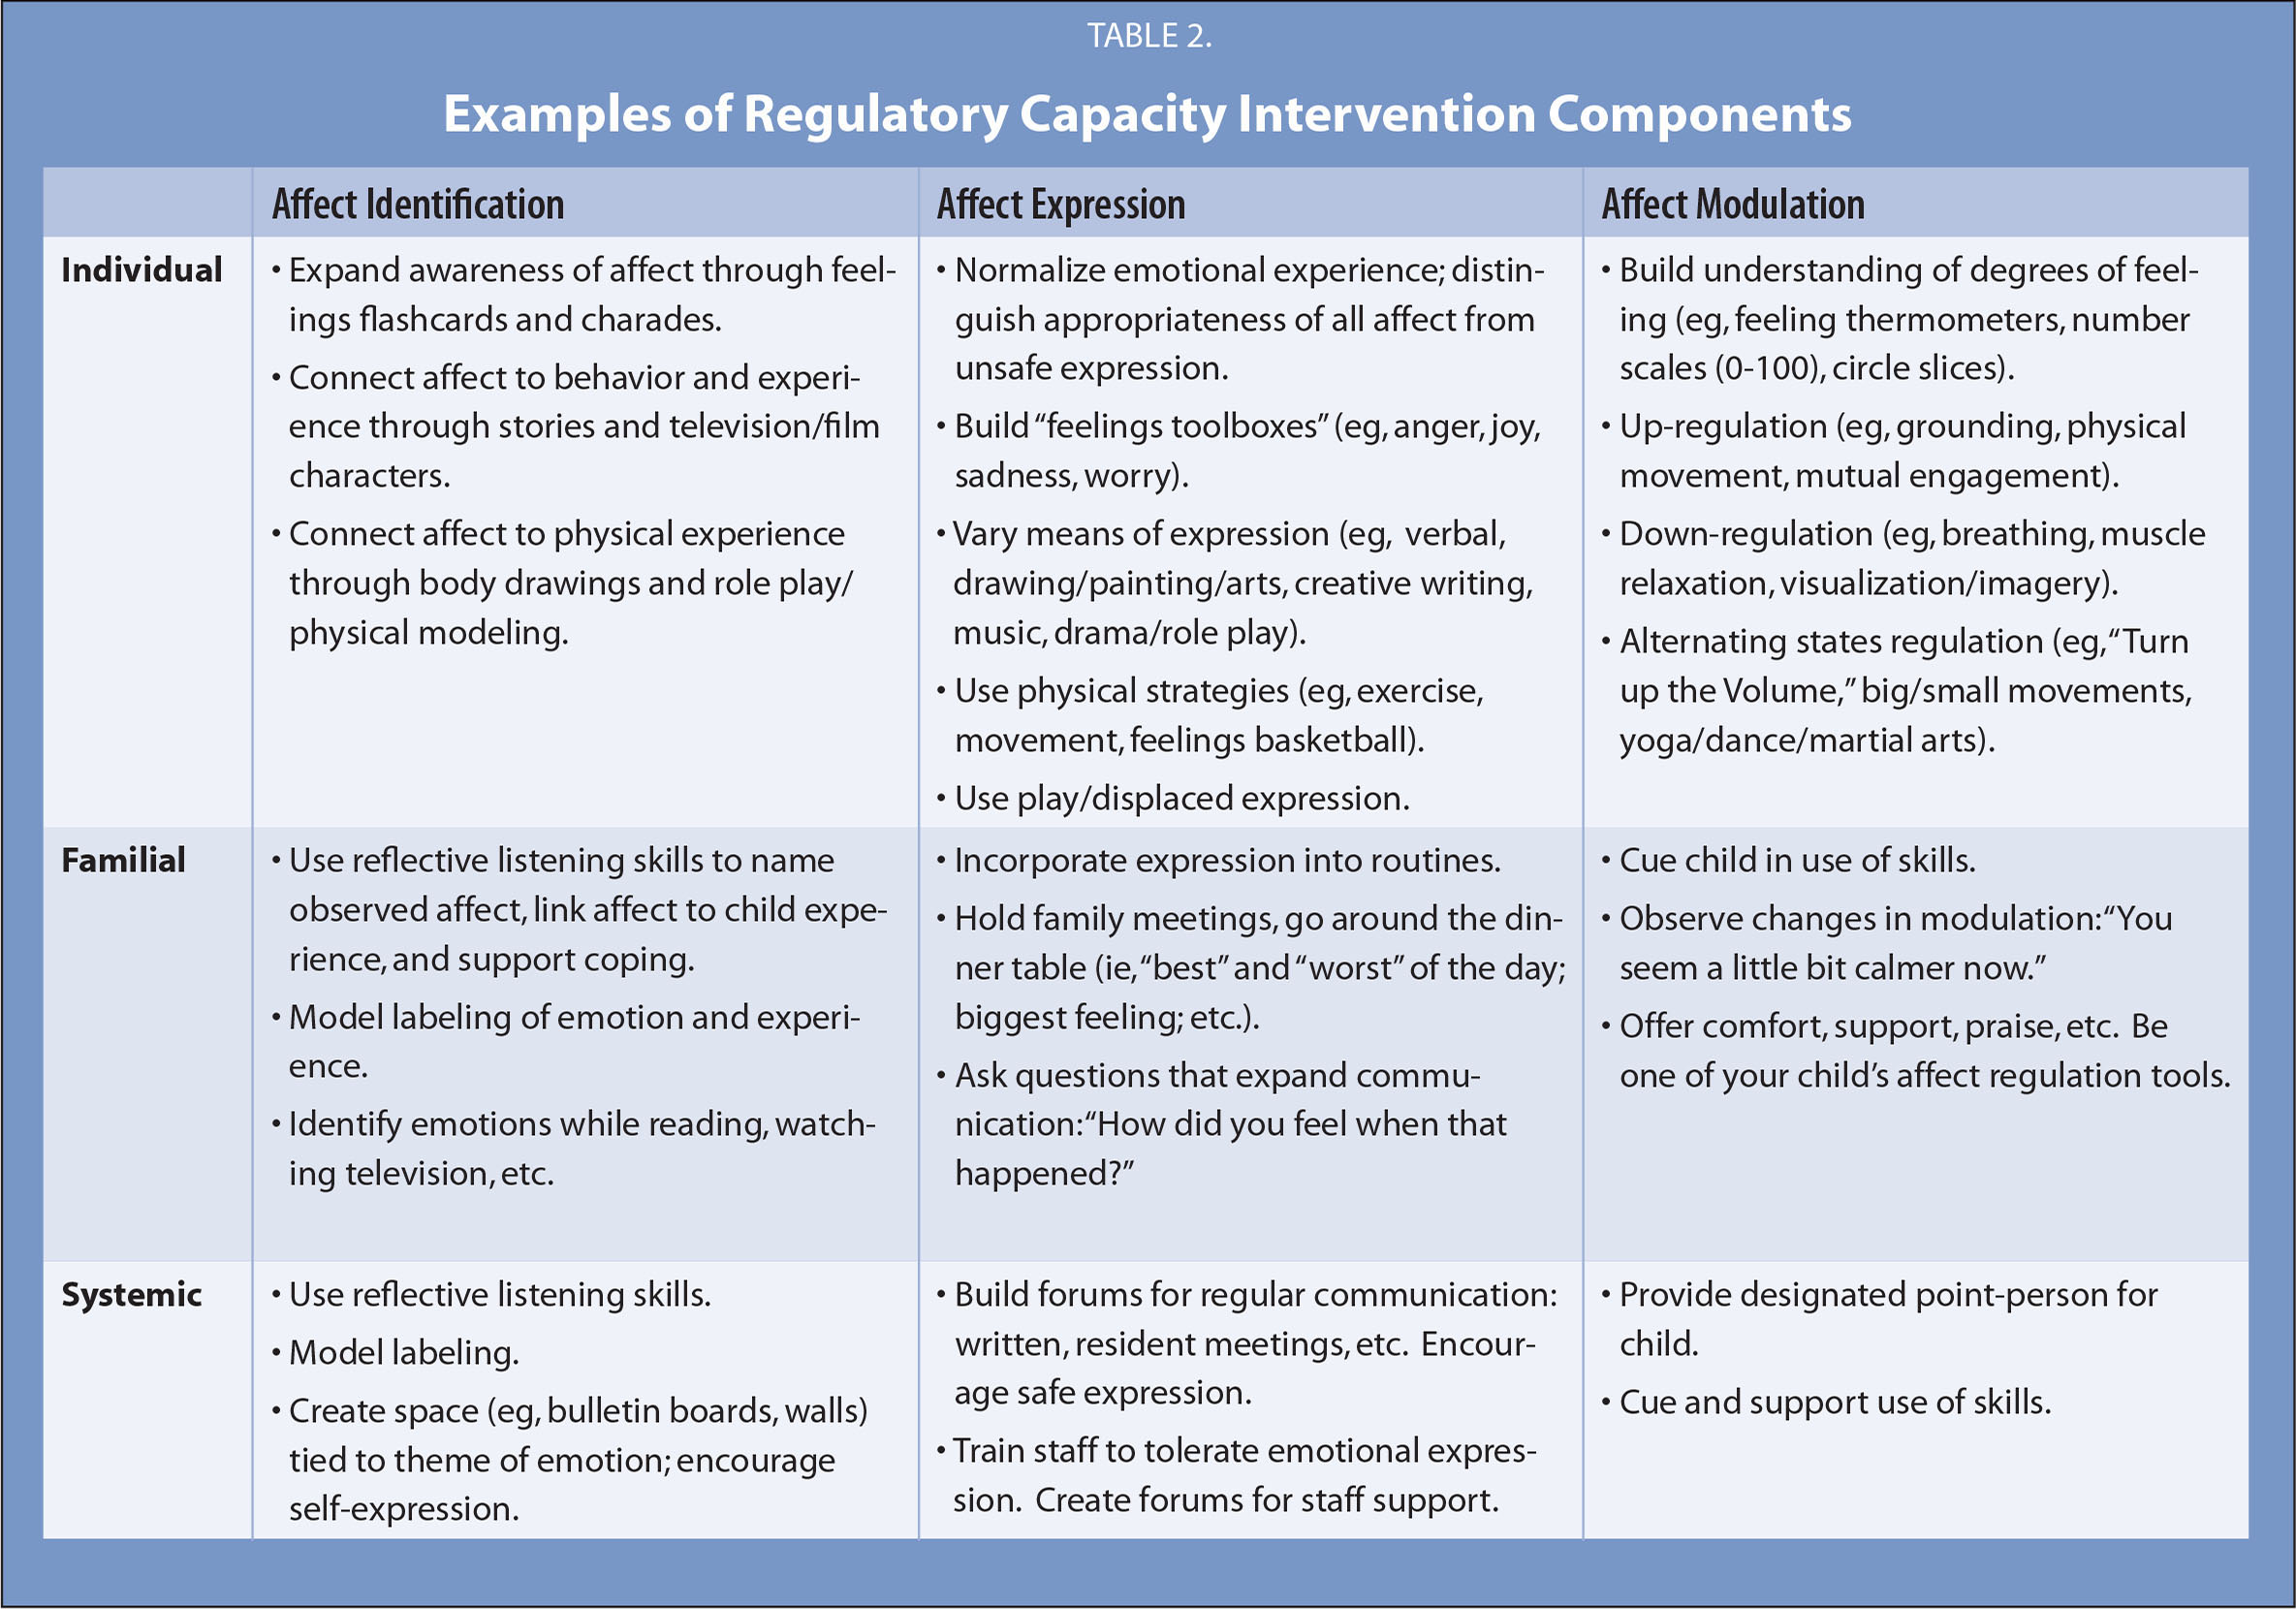 Examples of Regulatory Capacity Intervention Components